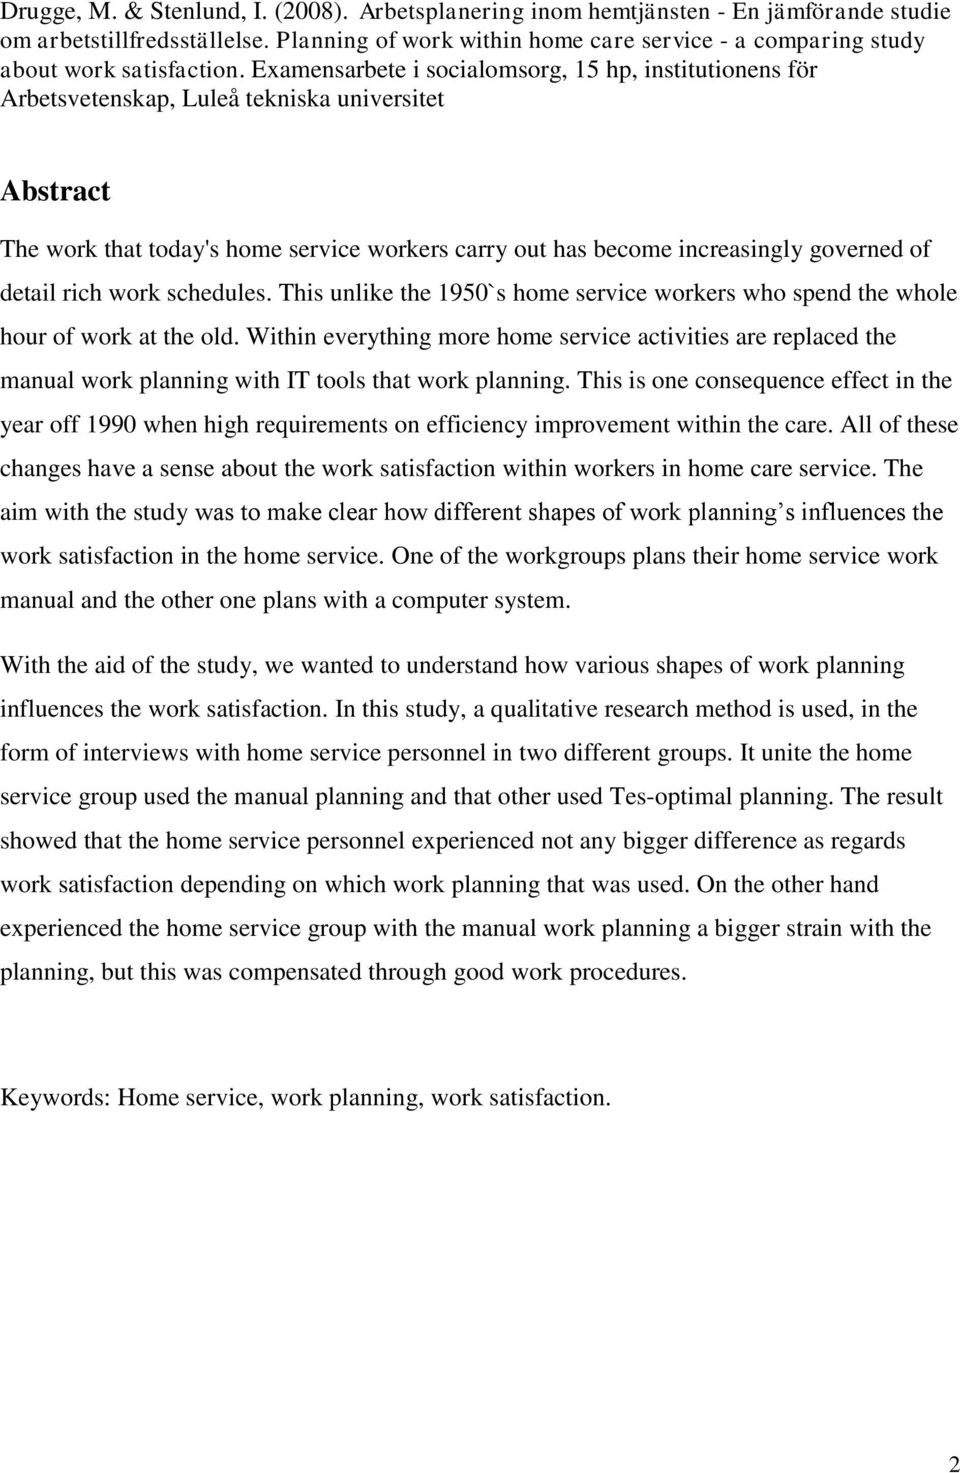 Examensarbete i socialomsorg, 15 hp, institutionens för Arbetsvetenskap, Luleå tekniska universitet Abstract The work that today's home service workers carry out has become increasingly governed of